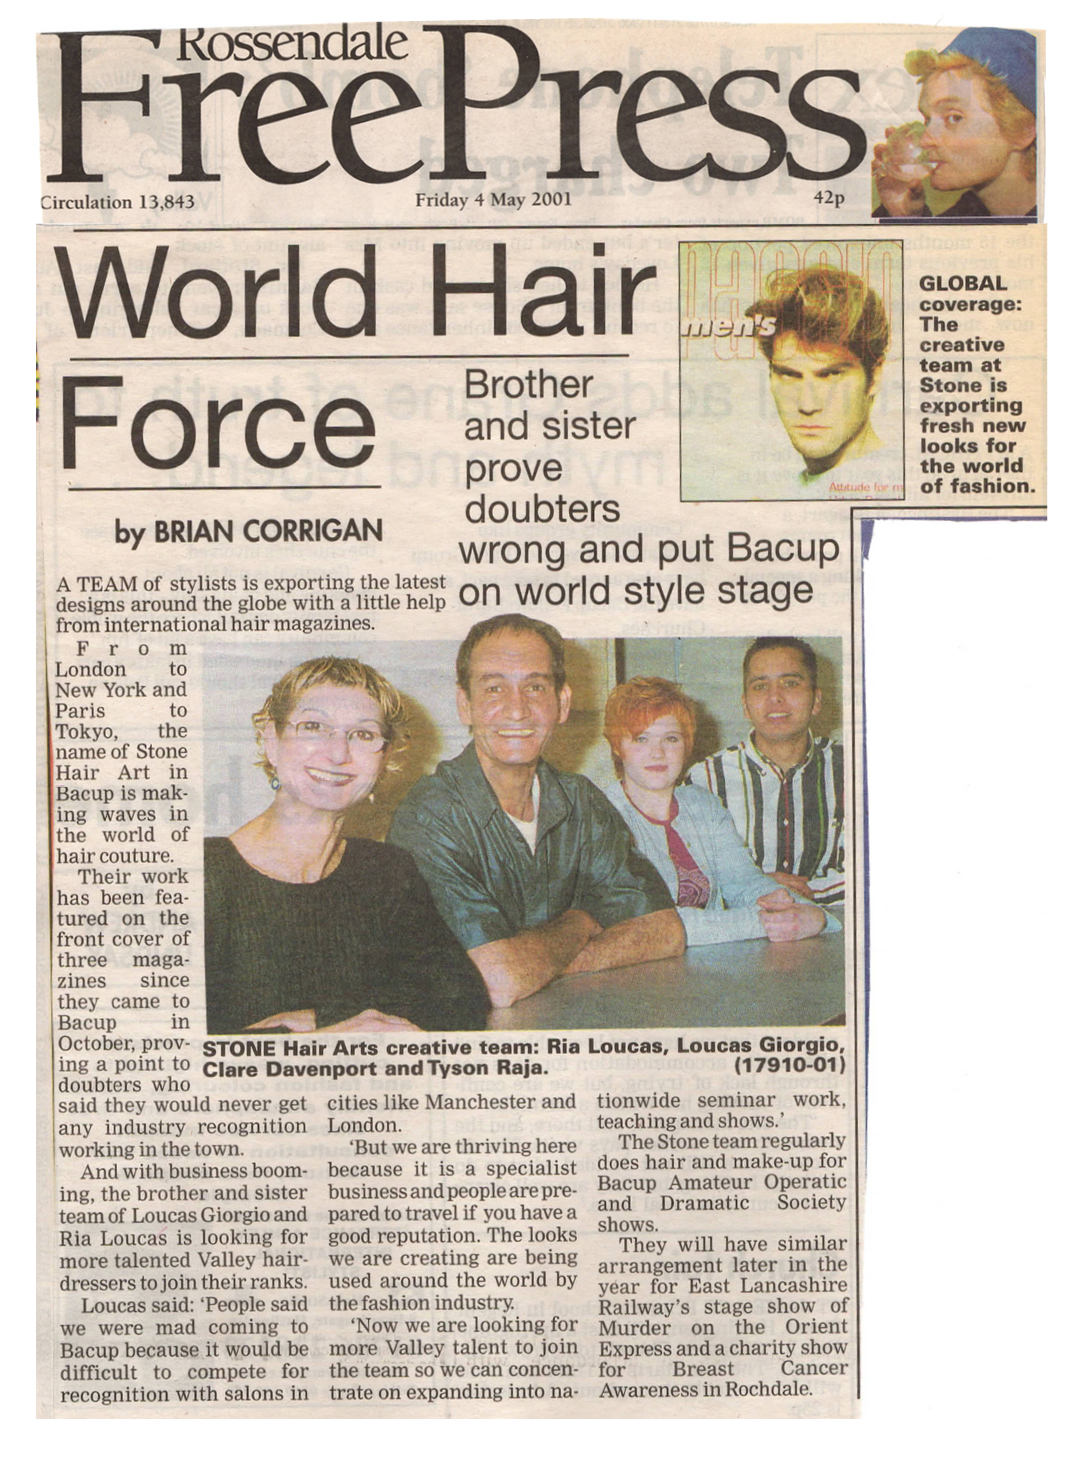 World Hair Force clip - Rossendale FreePress - Friday 4th May 2001